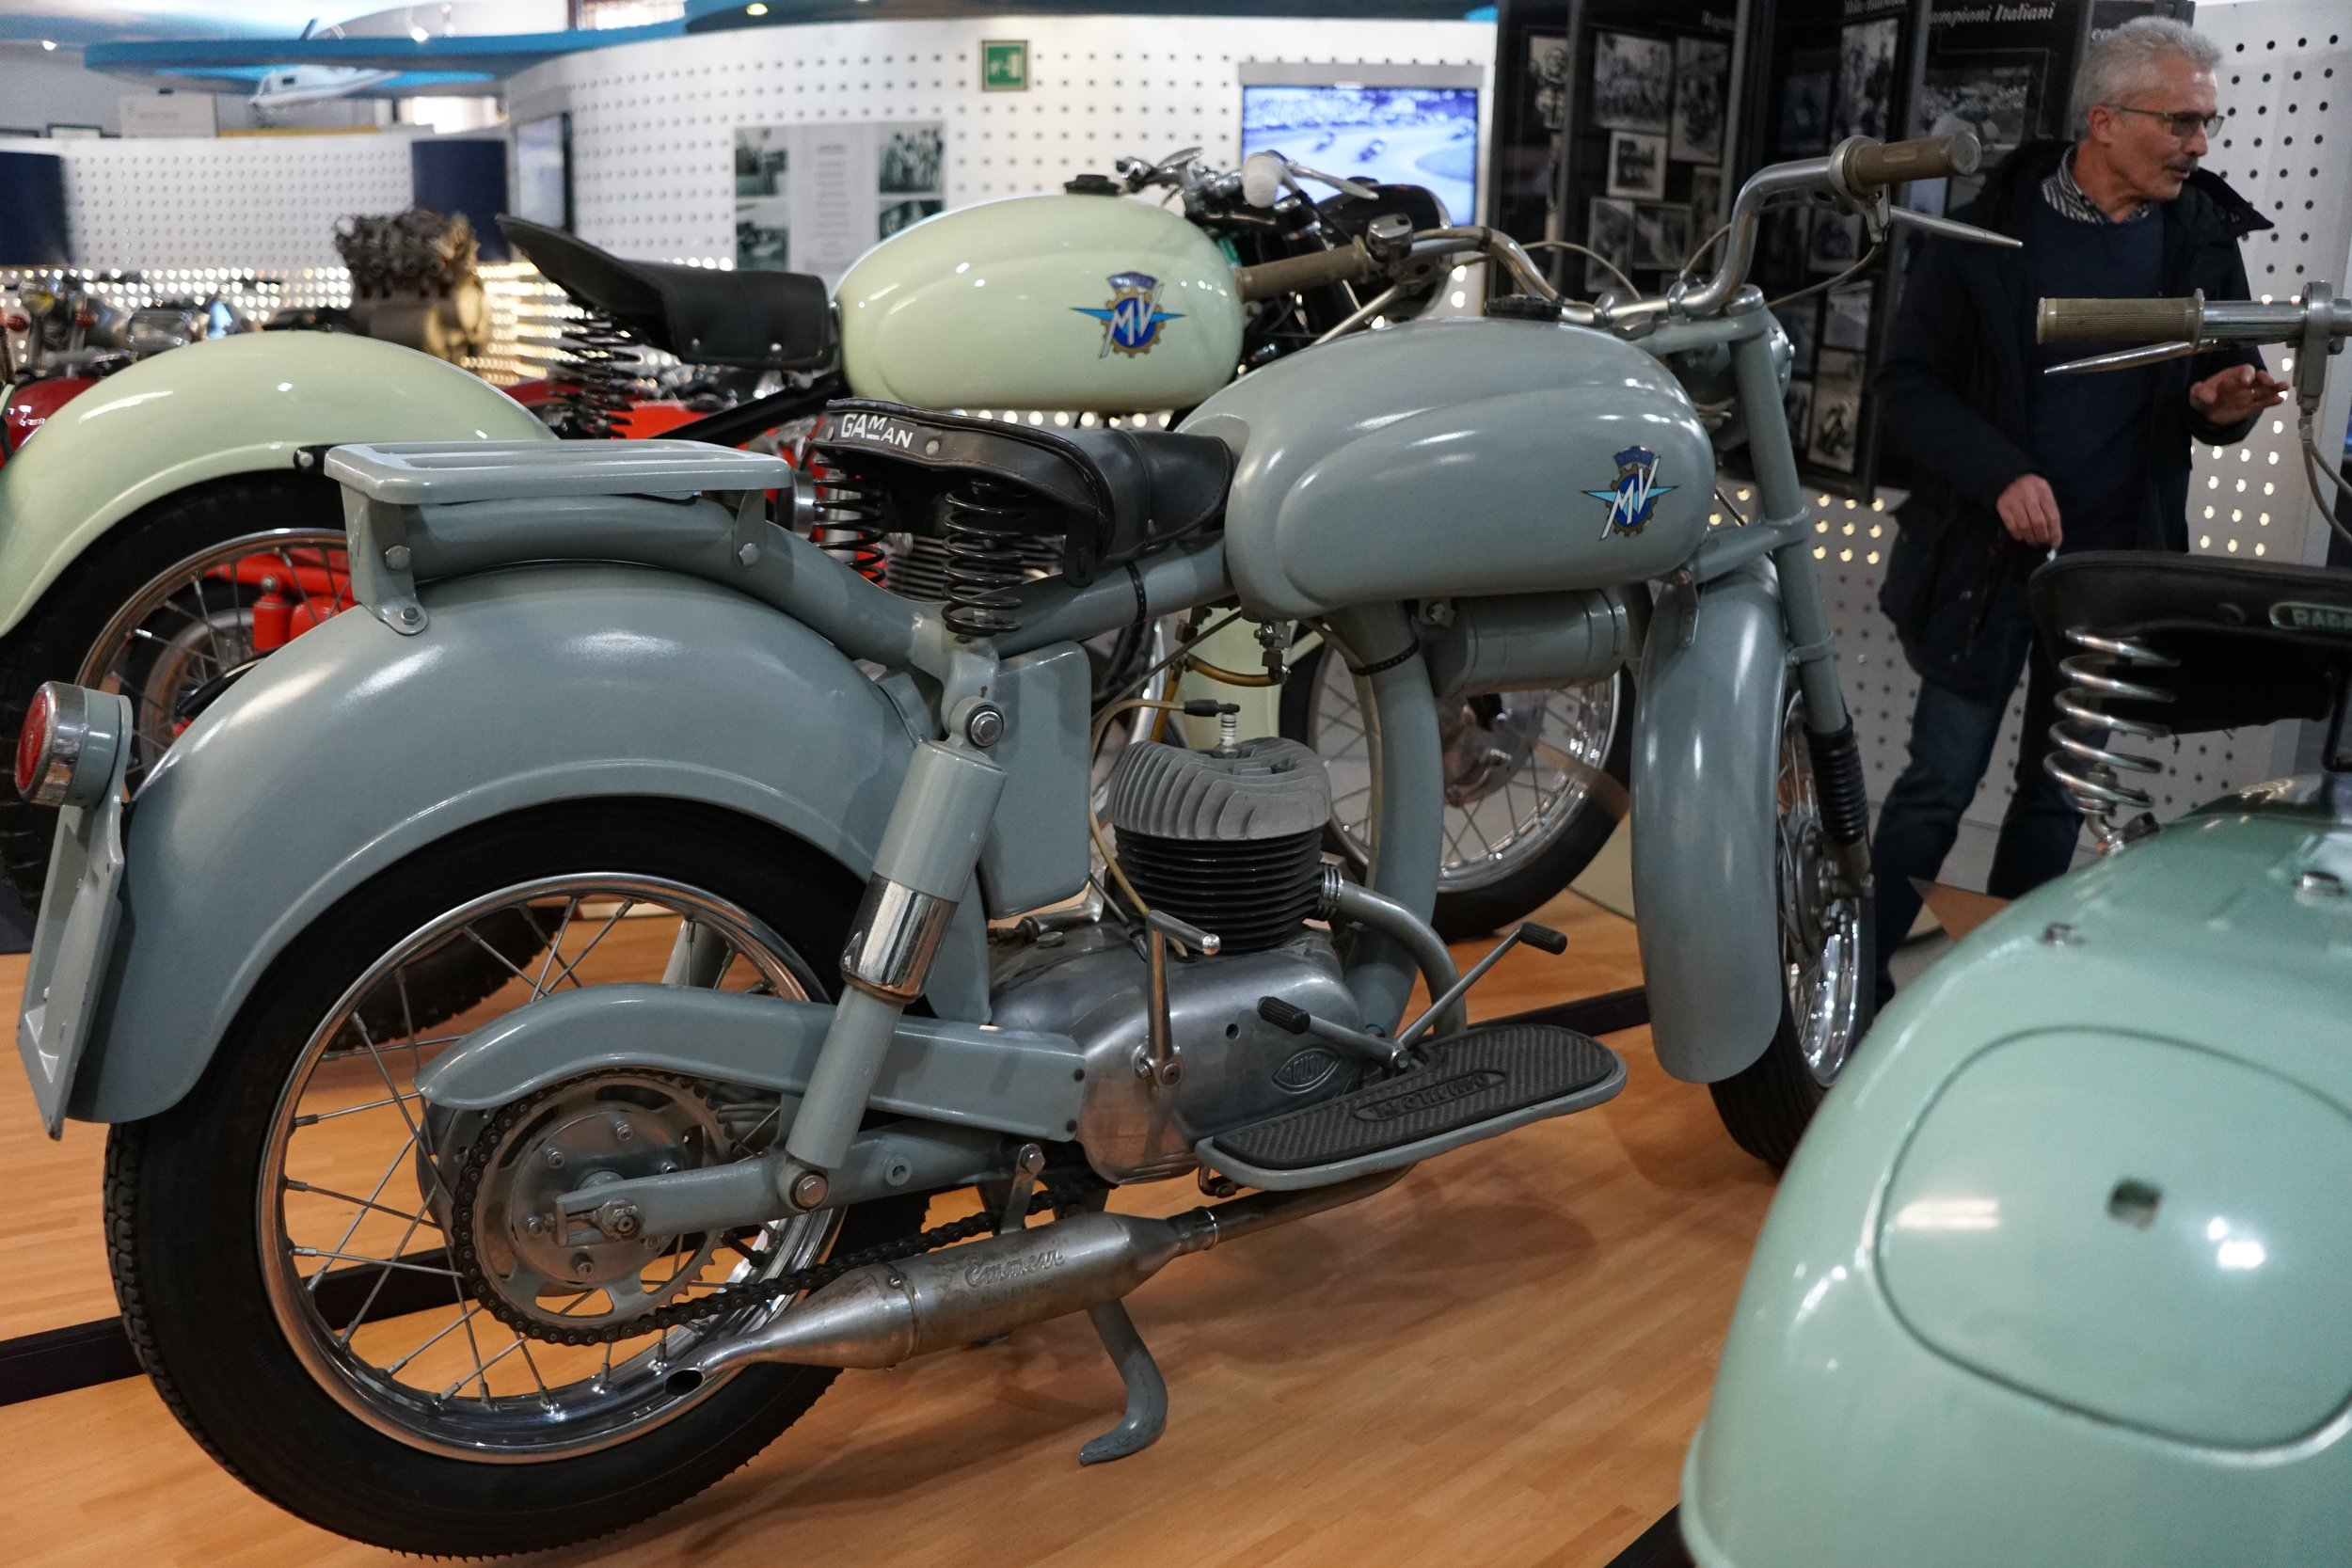 1955 prototype 125cc 'Pullman'. 125cc, 2-stroke, 3 speed. This was a commercially successful road bike. MV Agusta sold 9,000 units with a twistgrip gear shift in 1953, then 27,000 units with foot shift over the next two years.